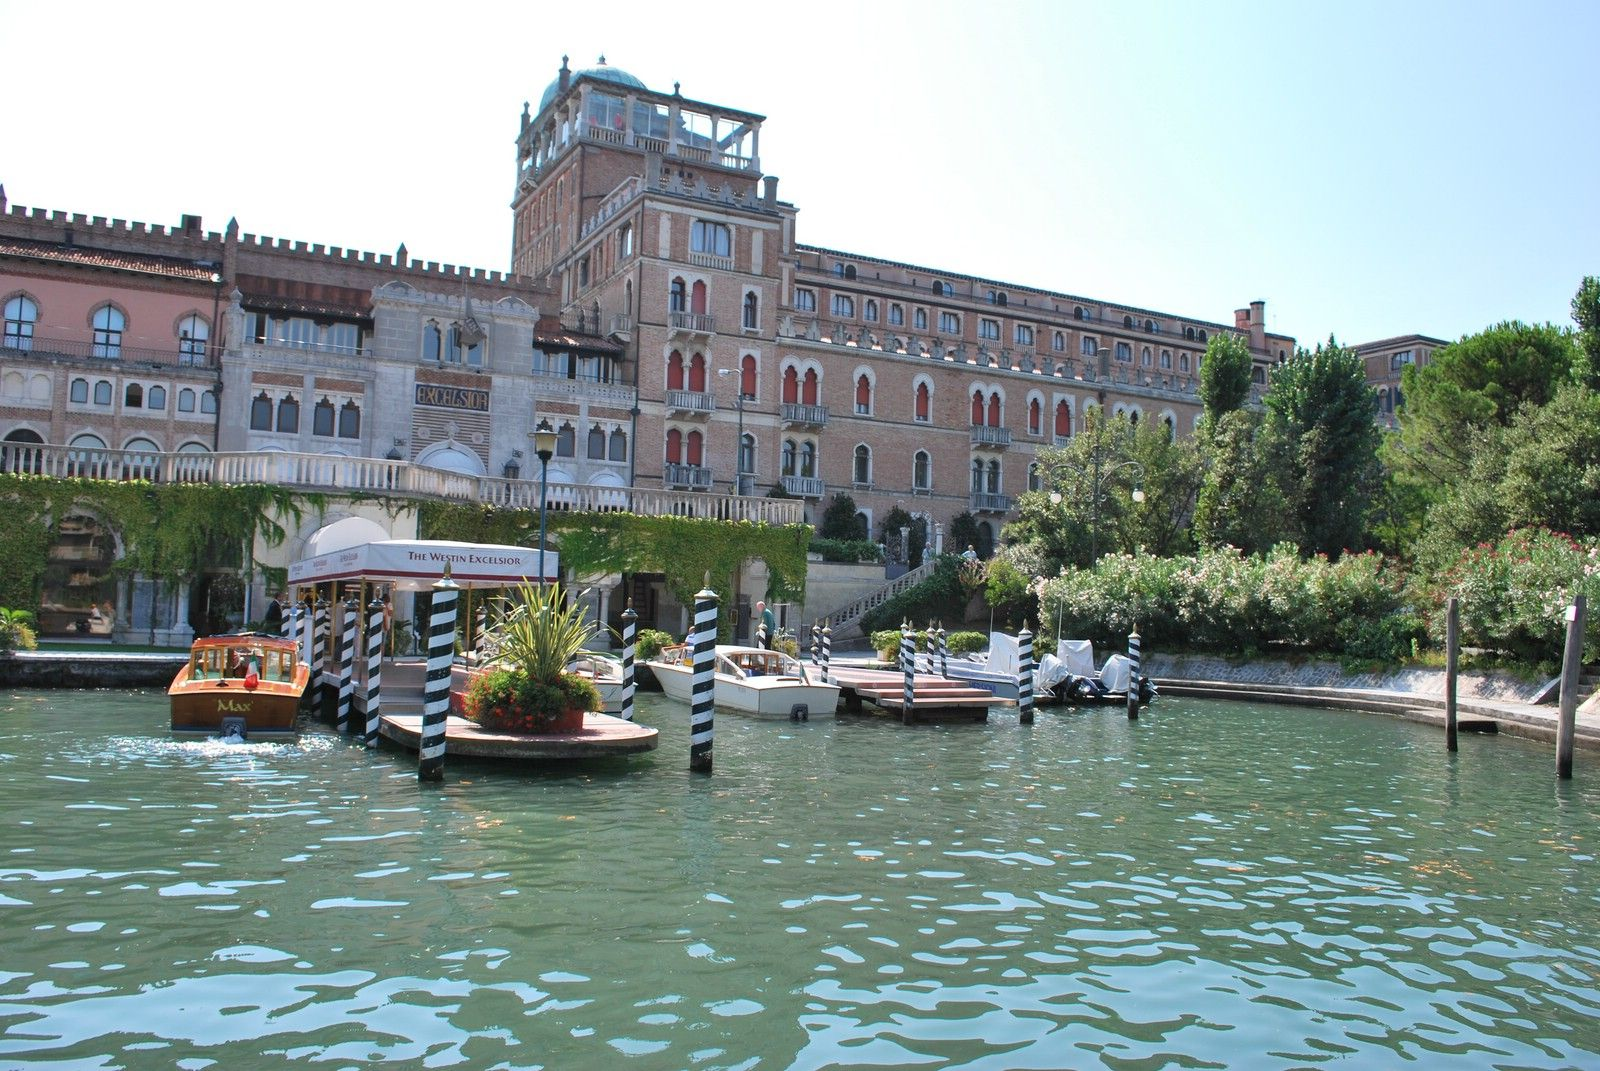 The hotel excelsior on the lido one of the most beautiful hotels in italy the excelsior is a short water taxi ride from venice